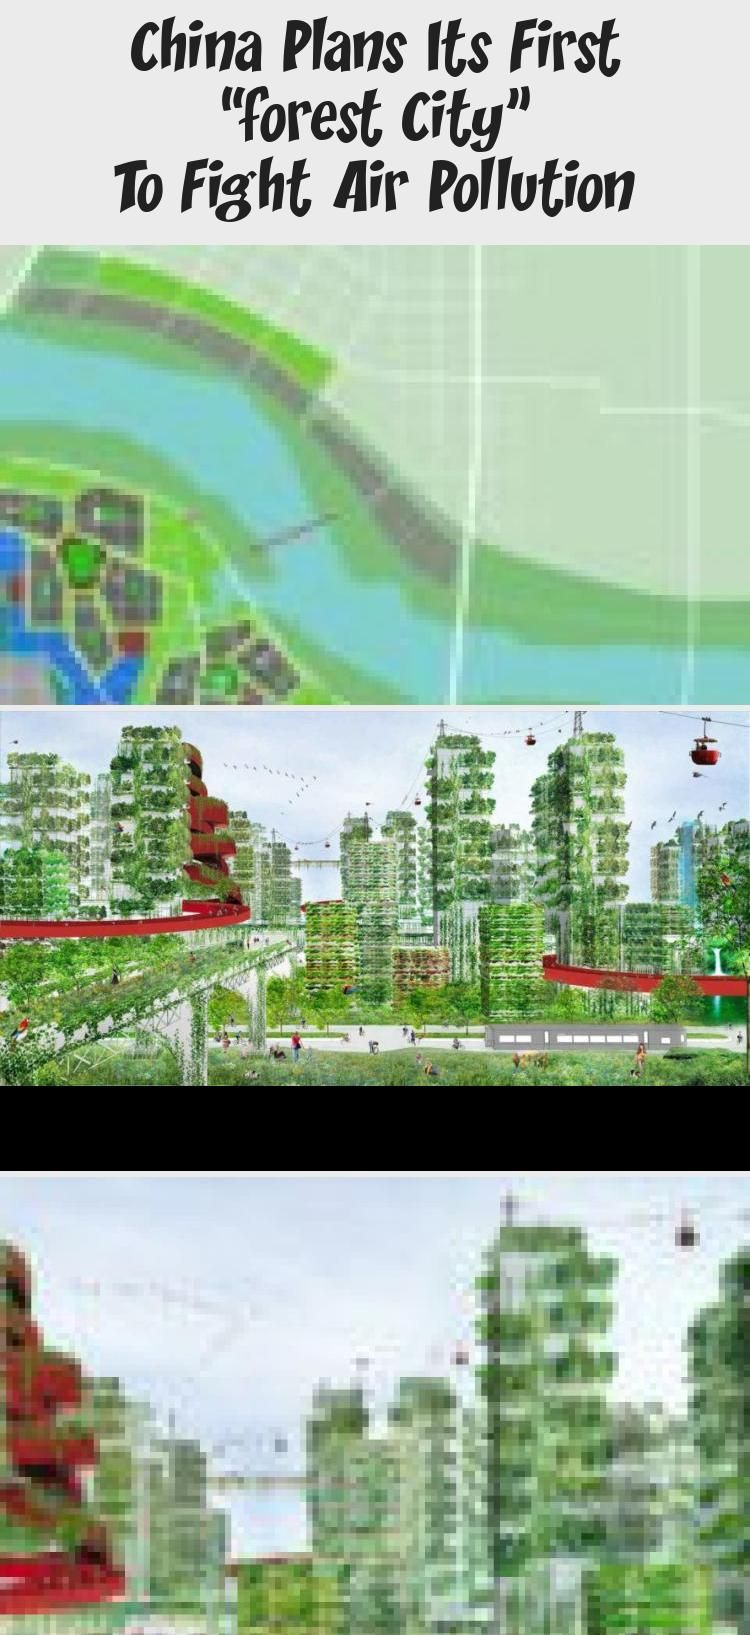 """China plans its first """"Forest City"""" to fight air pollution"""